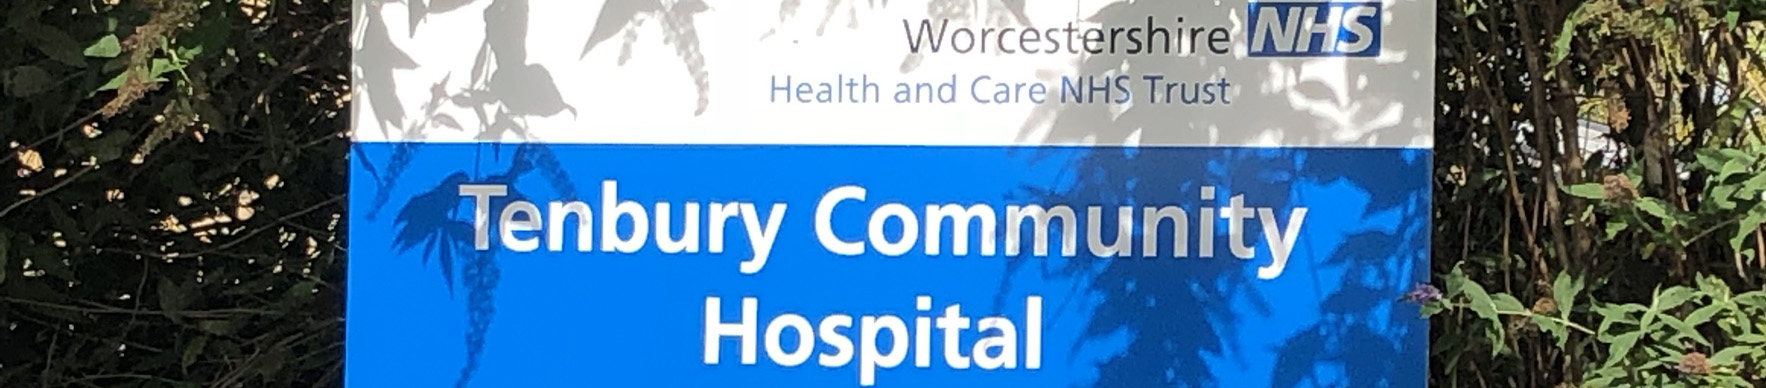 Tenbury Community Hospital